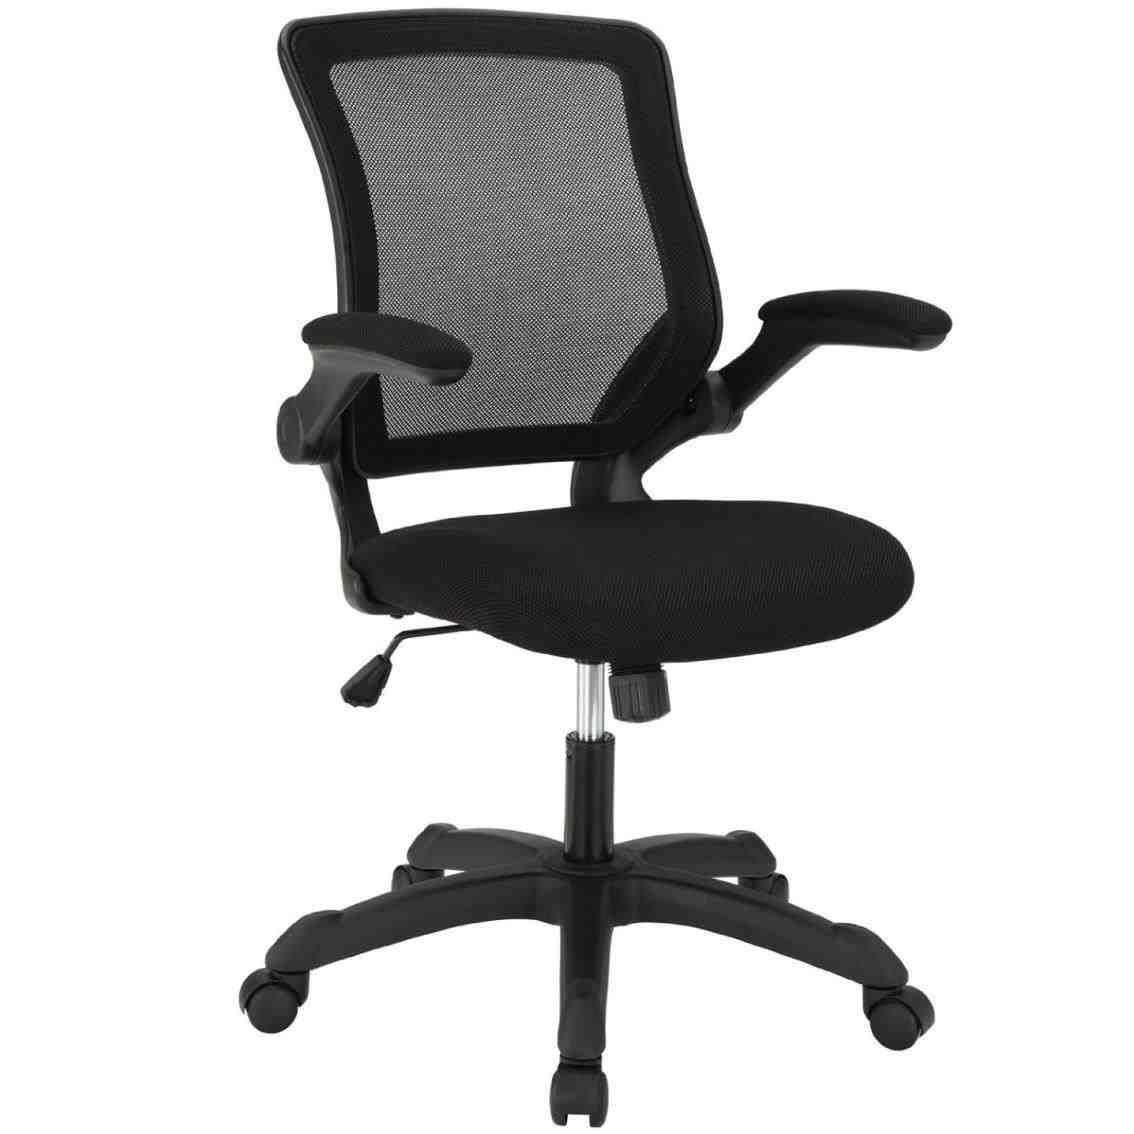 Cheap Office Chairs In Canada Homcom Racecar Styled Office Chair